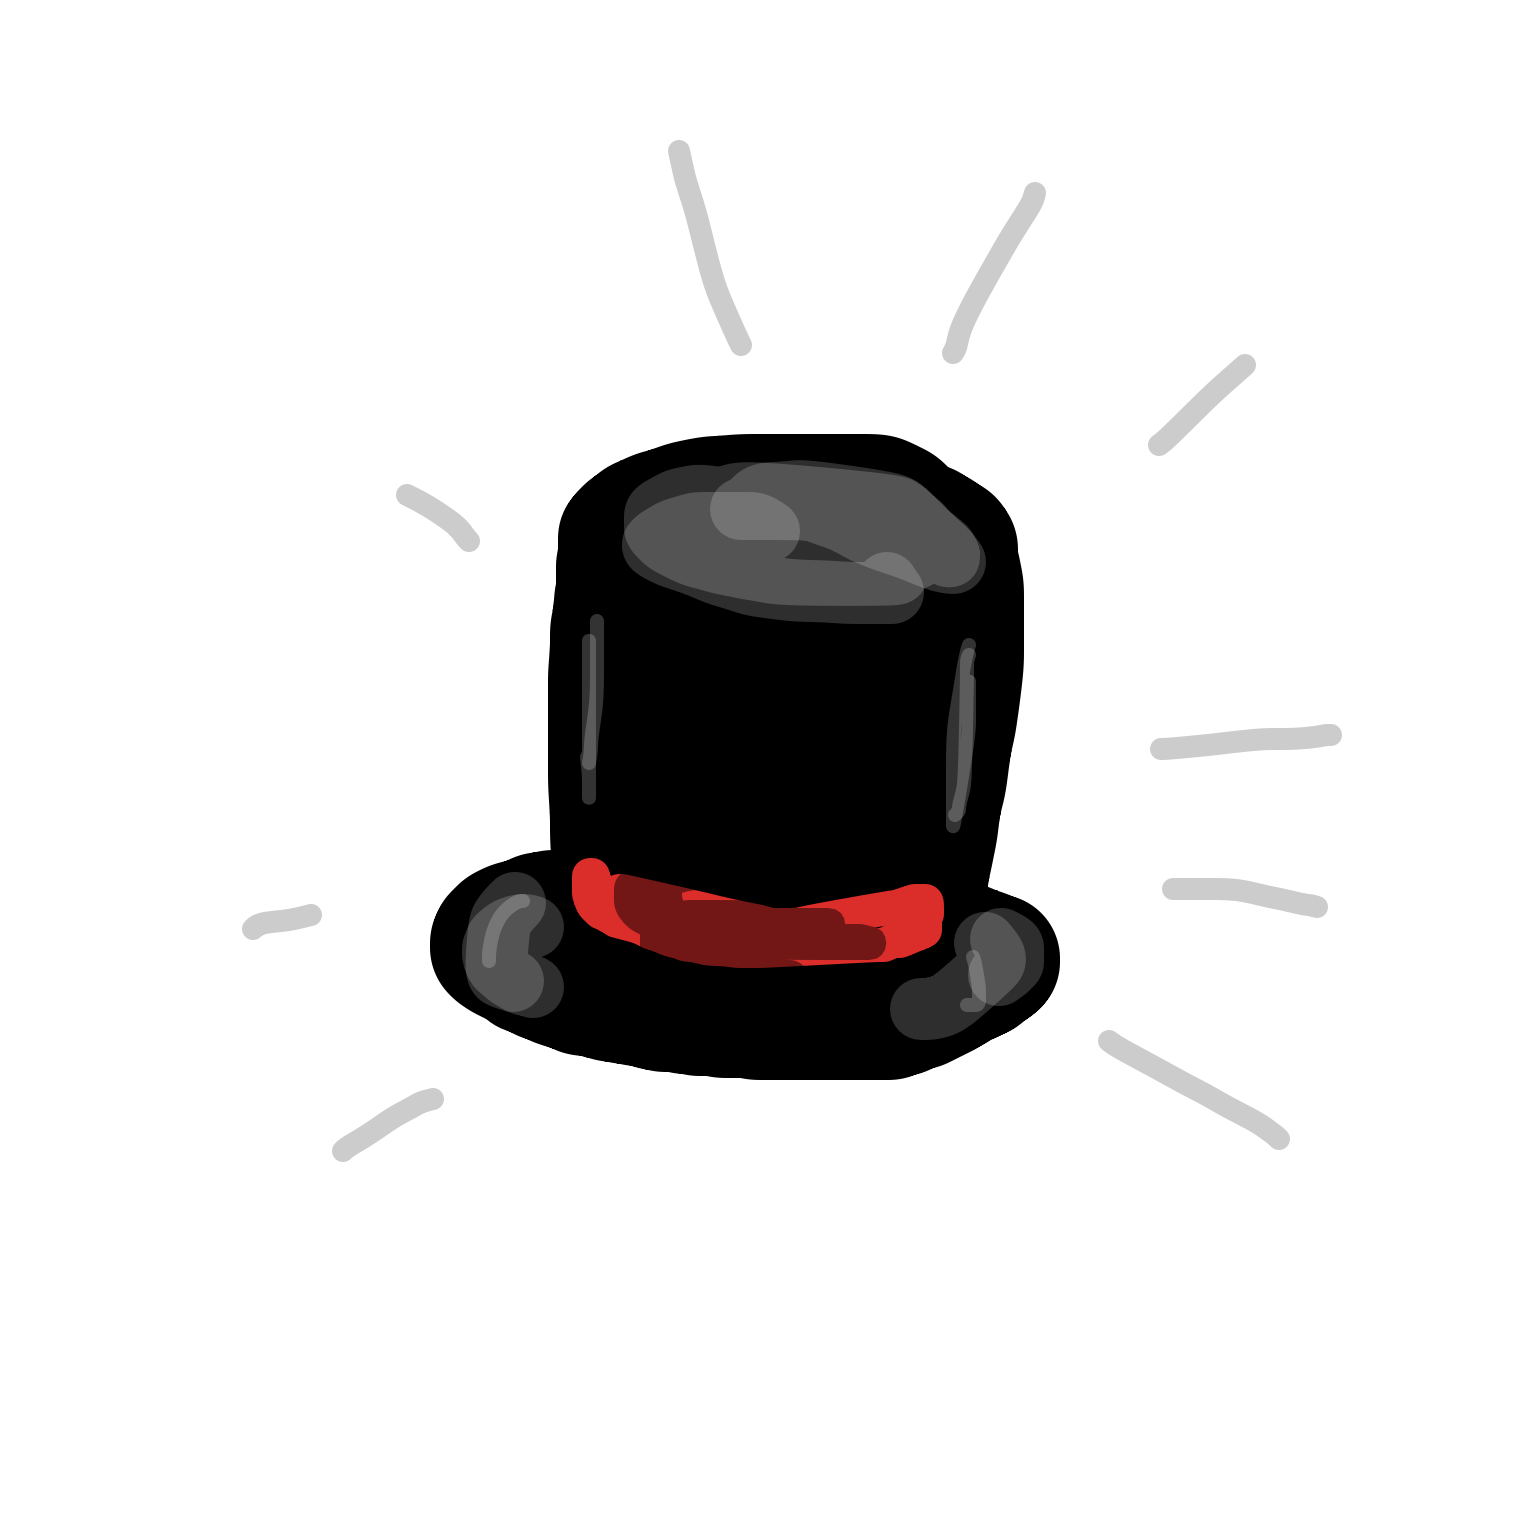 Liked webcomic Magic Top Hat